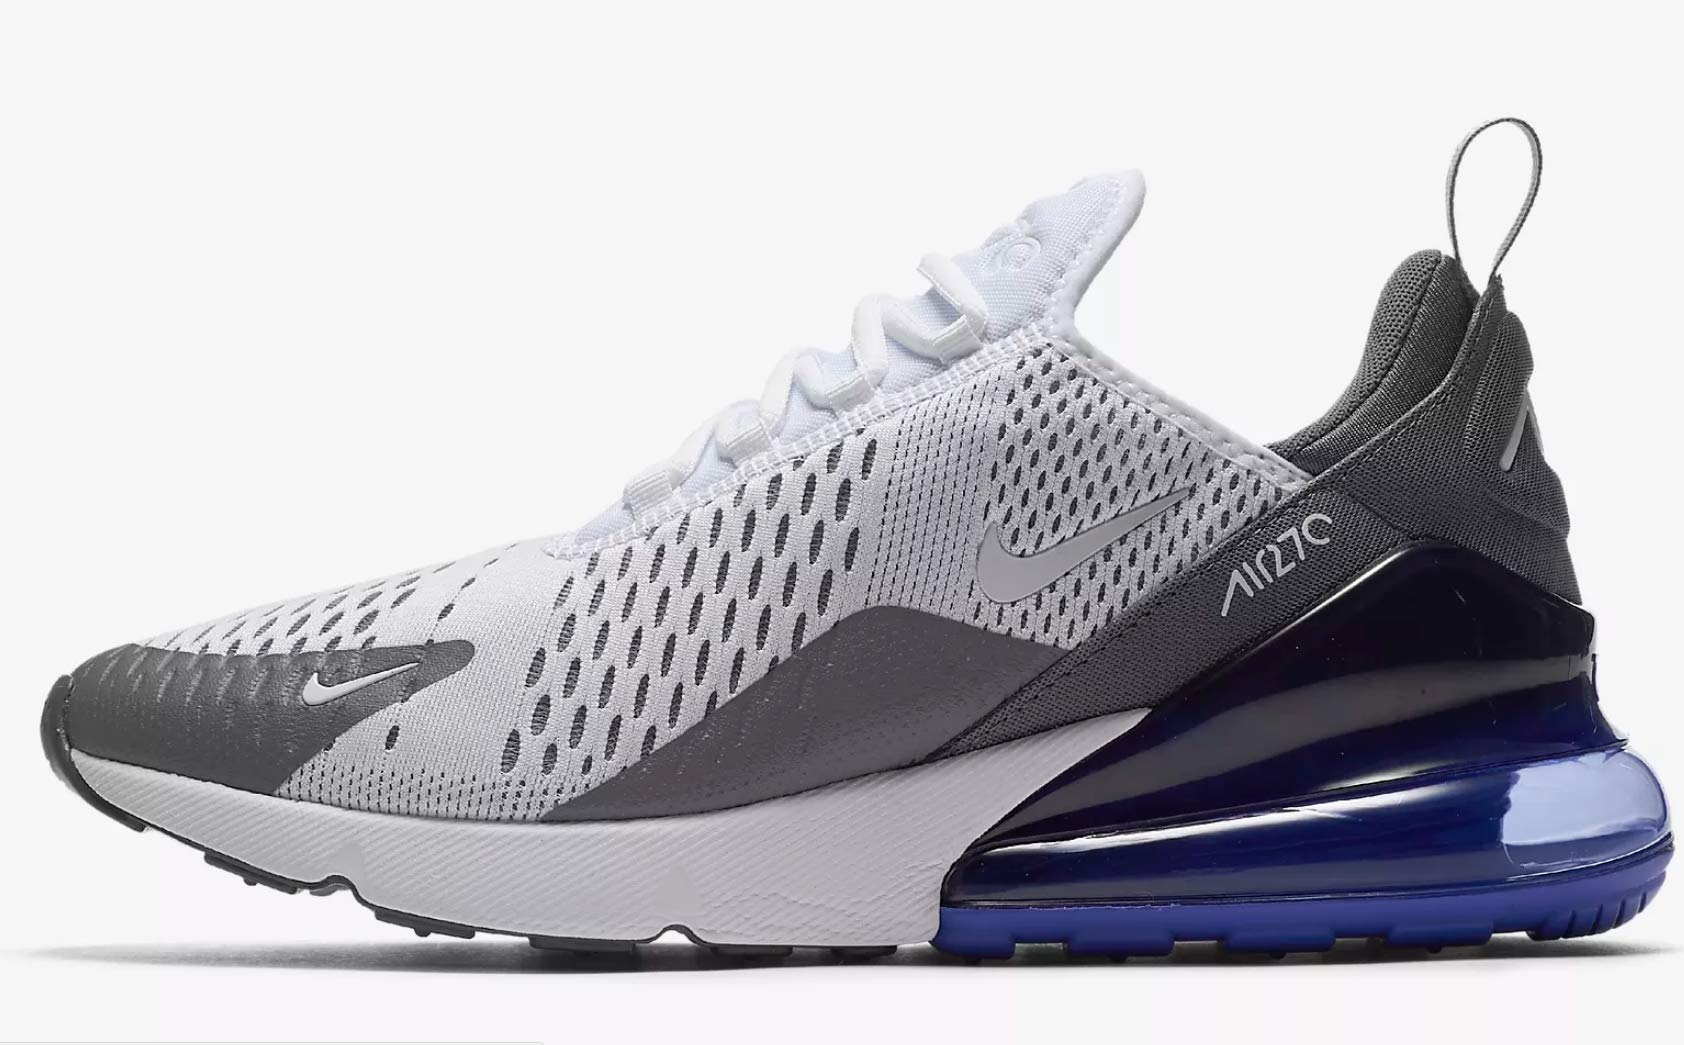 uk availability a3352 dae80 Galleon - NIKE AIR MAX 270 Men s Sneaker AH8050-107-size 12